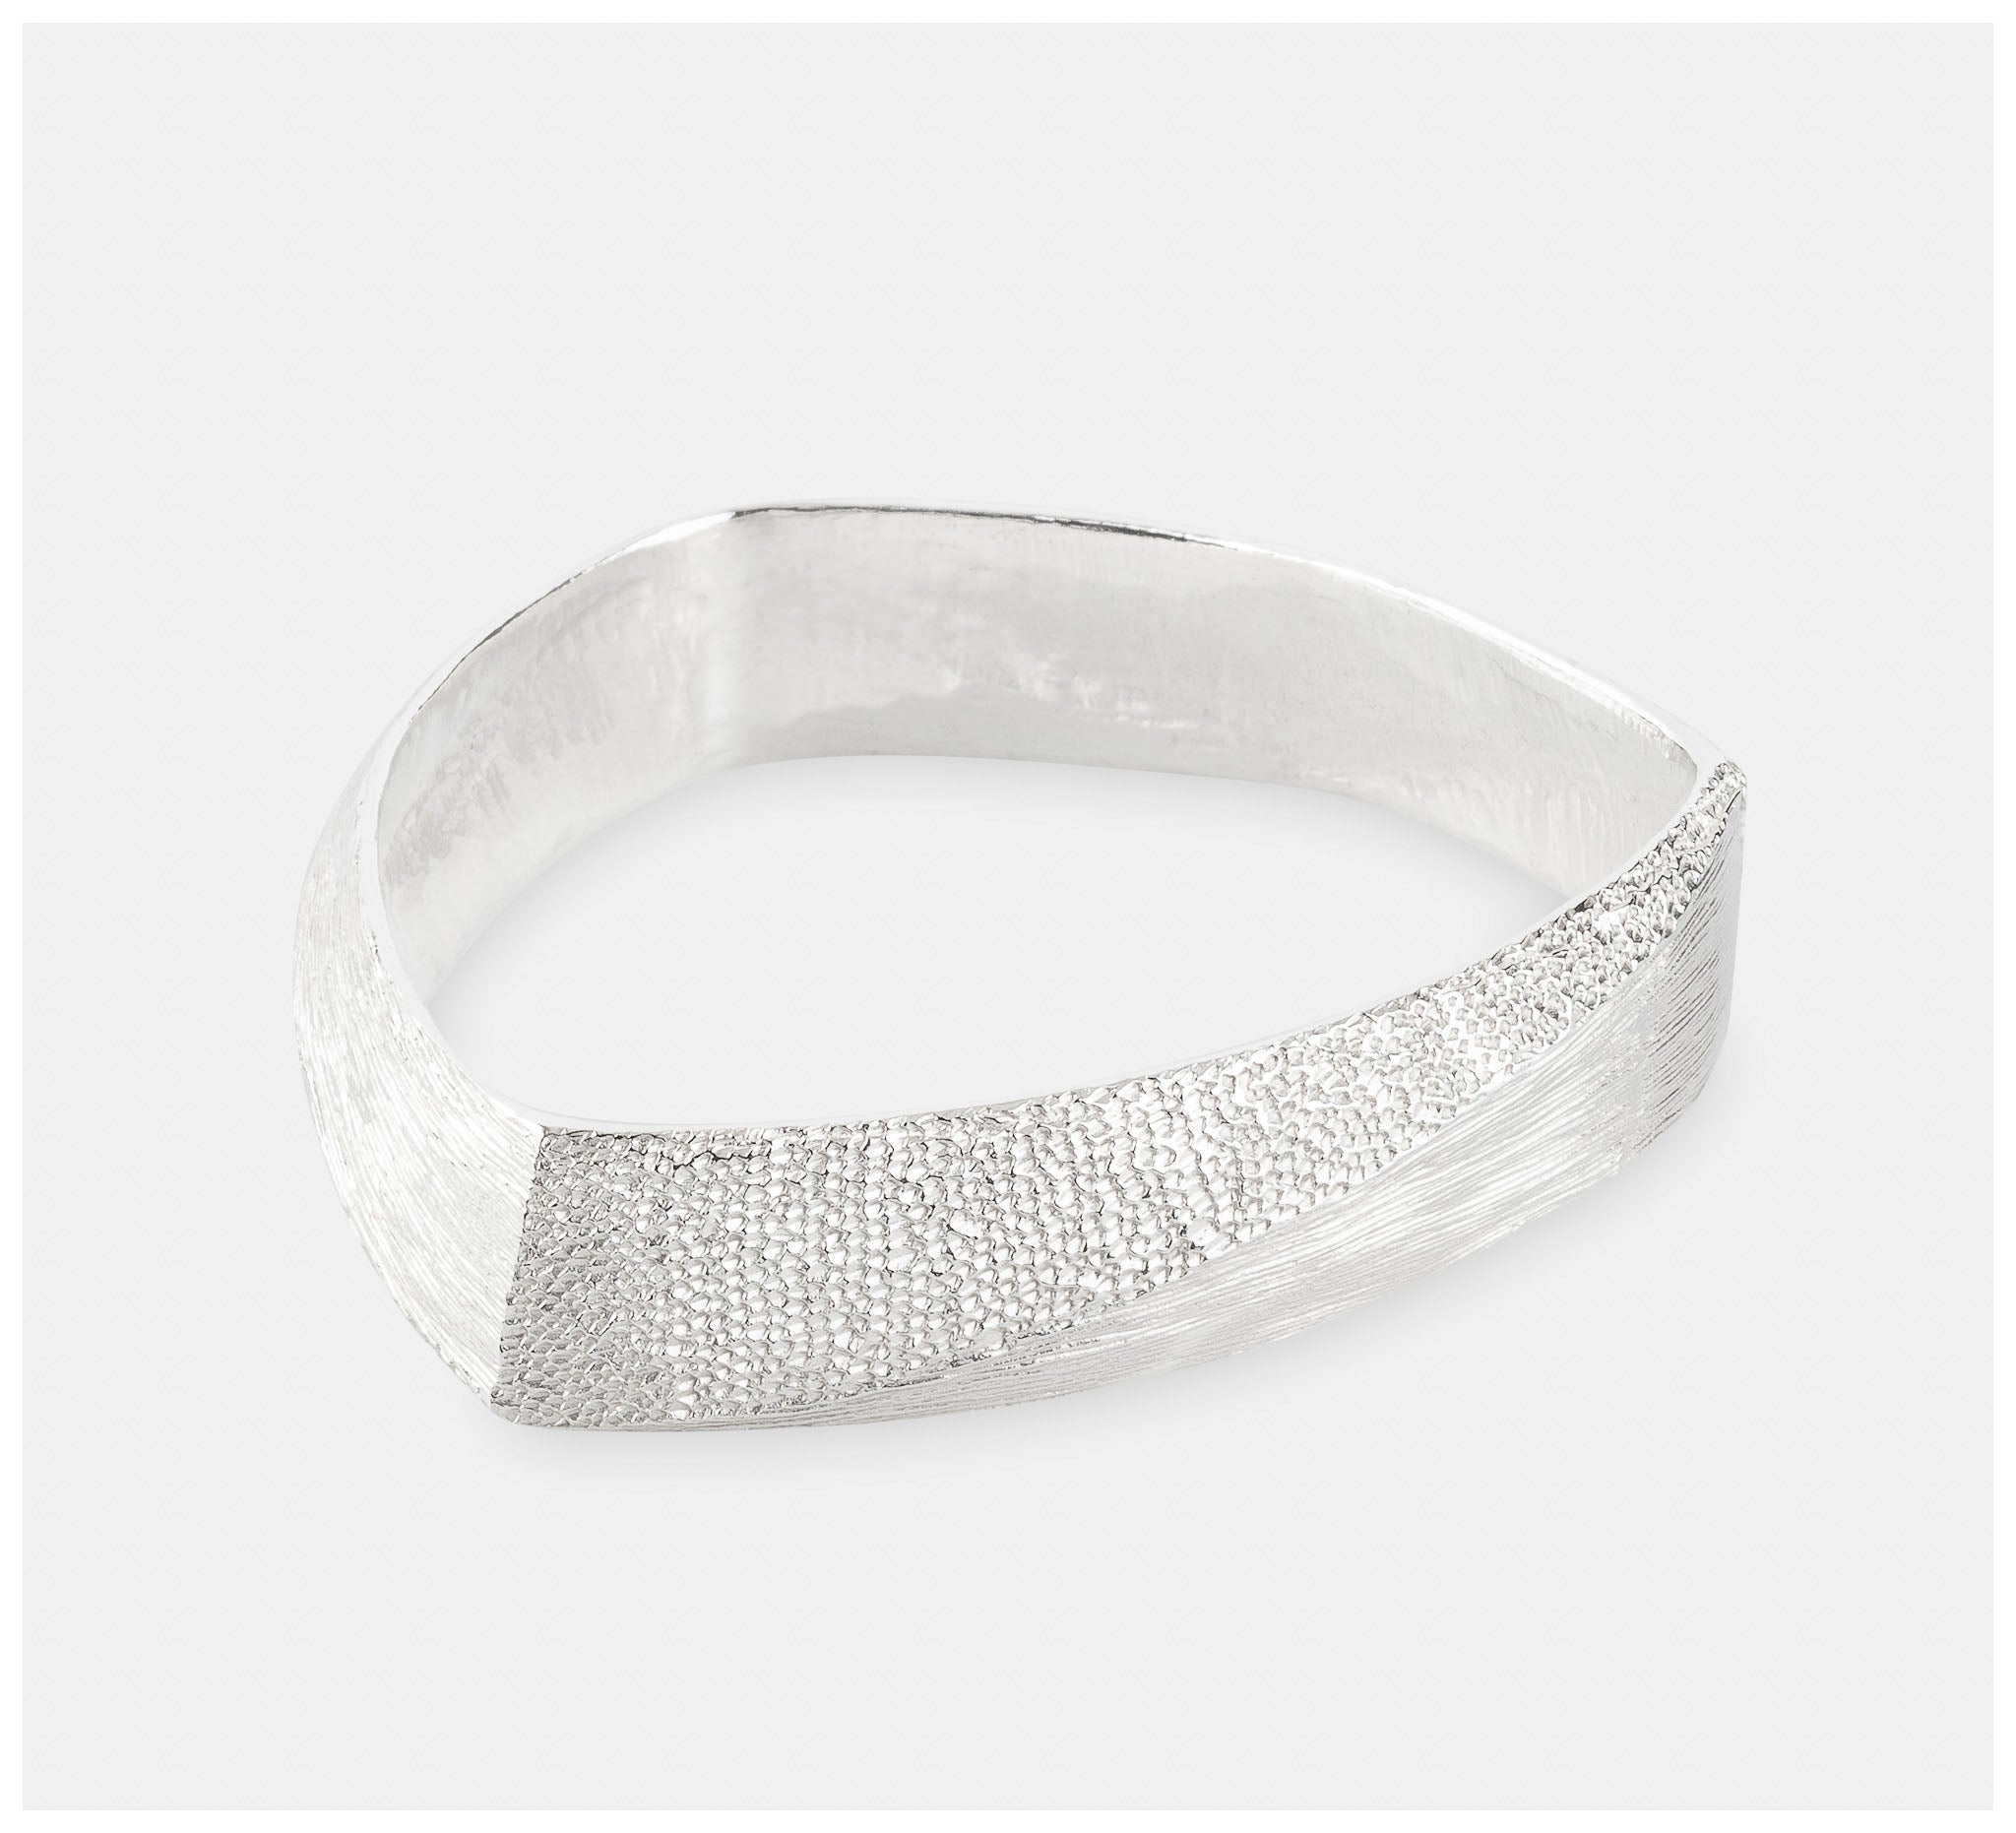 Abby Seymour – Peak Sterling Silver Bangle